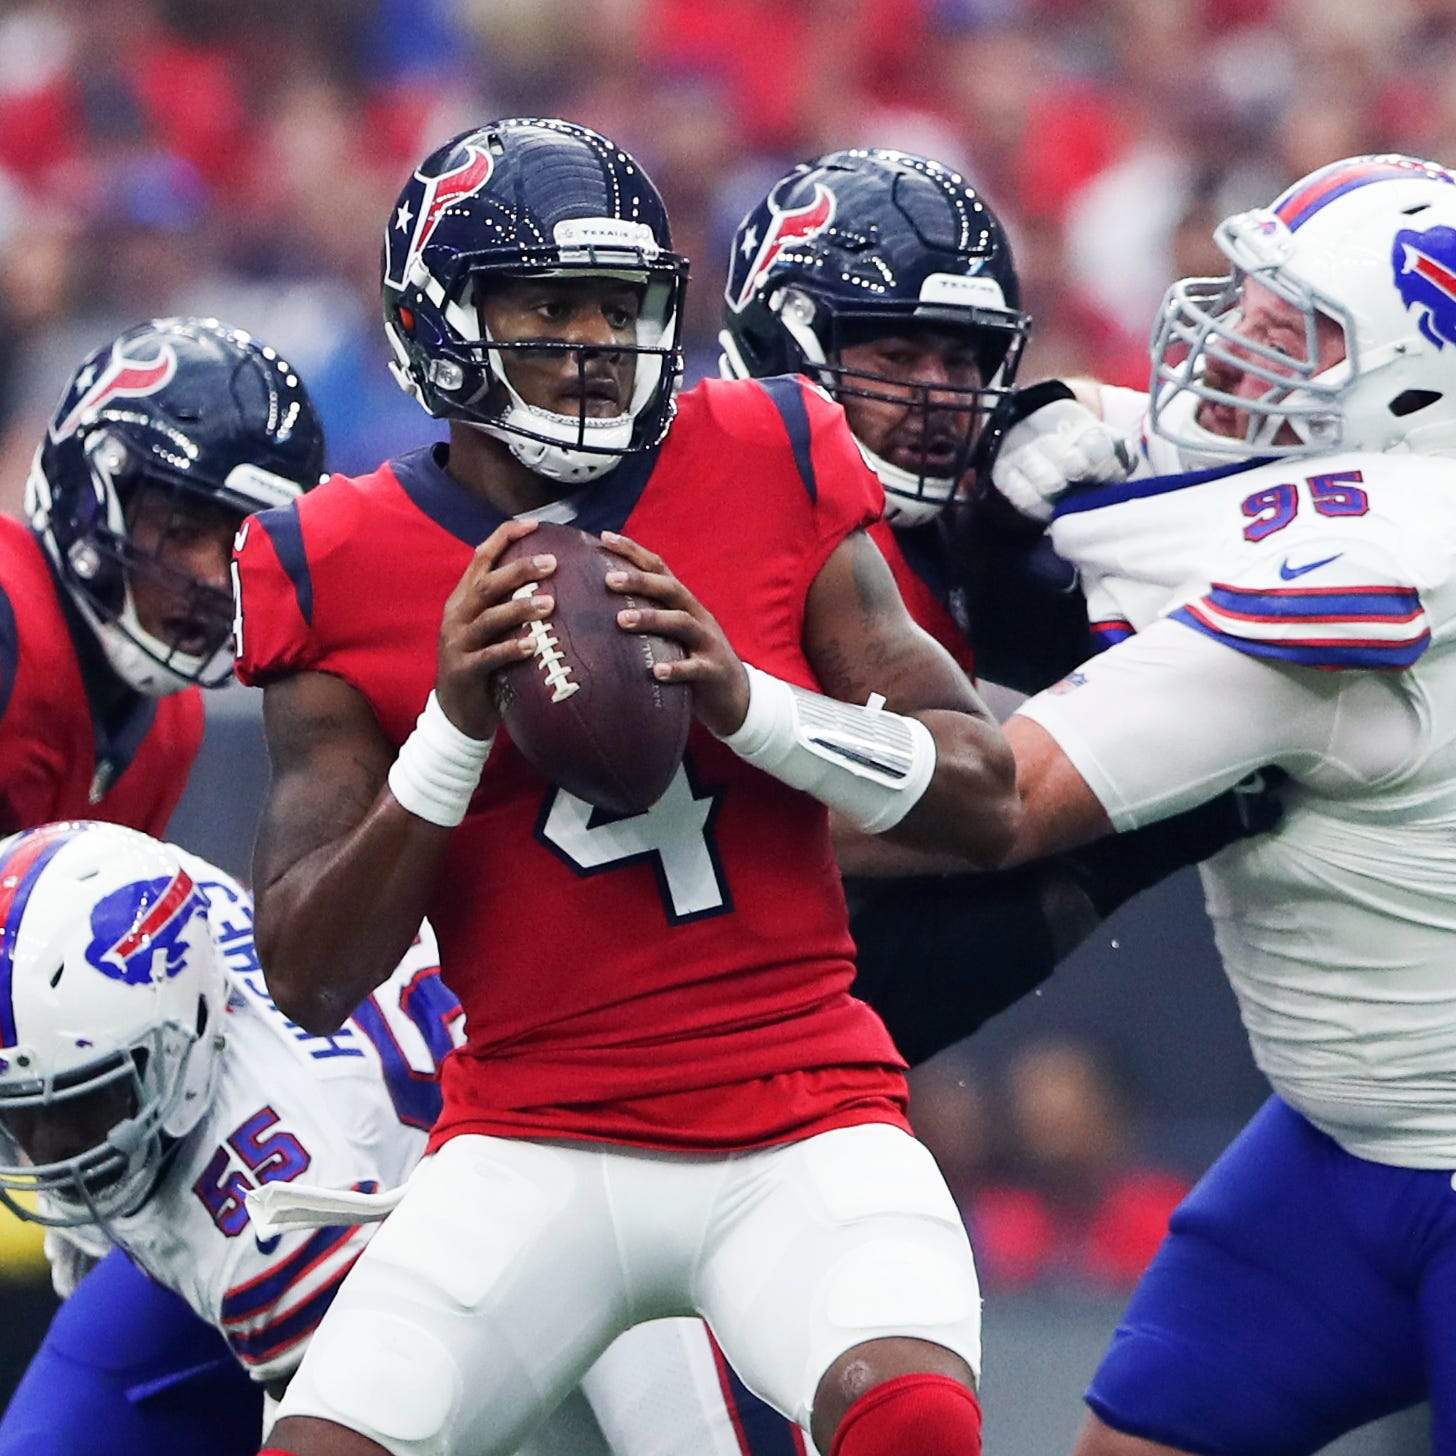 Deshaun Watson passing his way into NFL record books